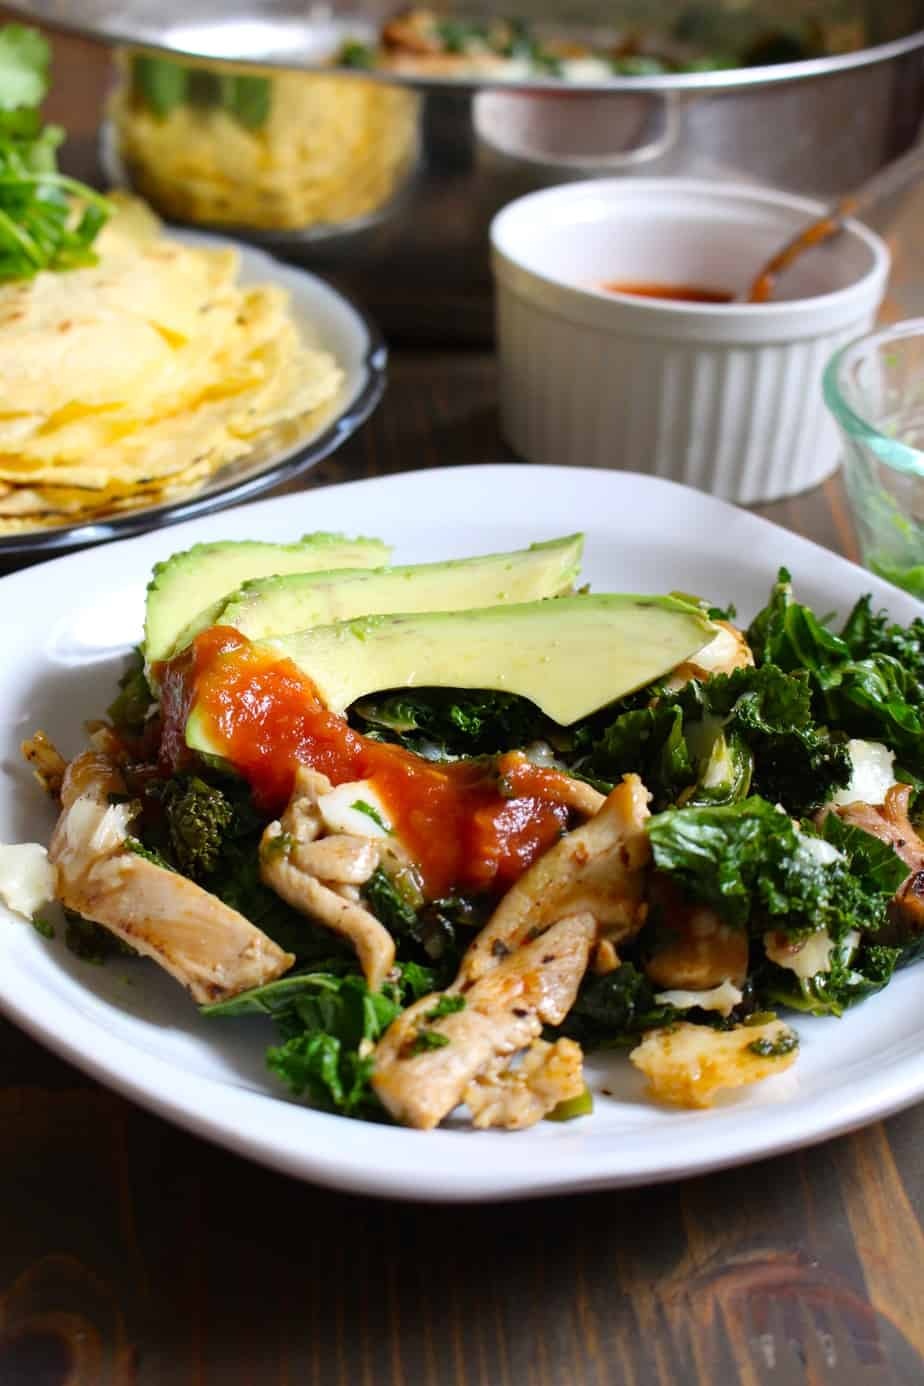 Jalapeño Chicken Skillet - Flavorful Chicken & Jalapeño with Kale #easy #dinner | Frugal Nutrition